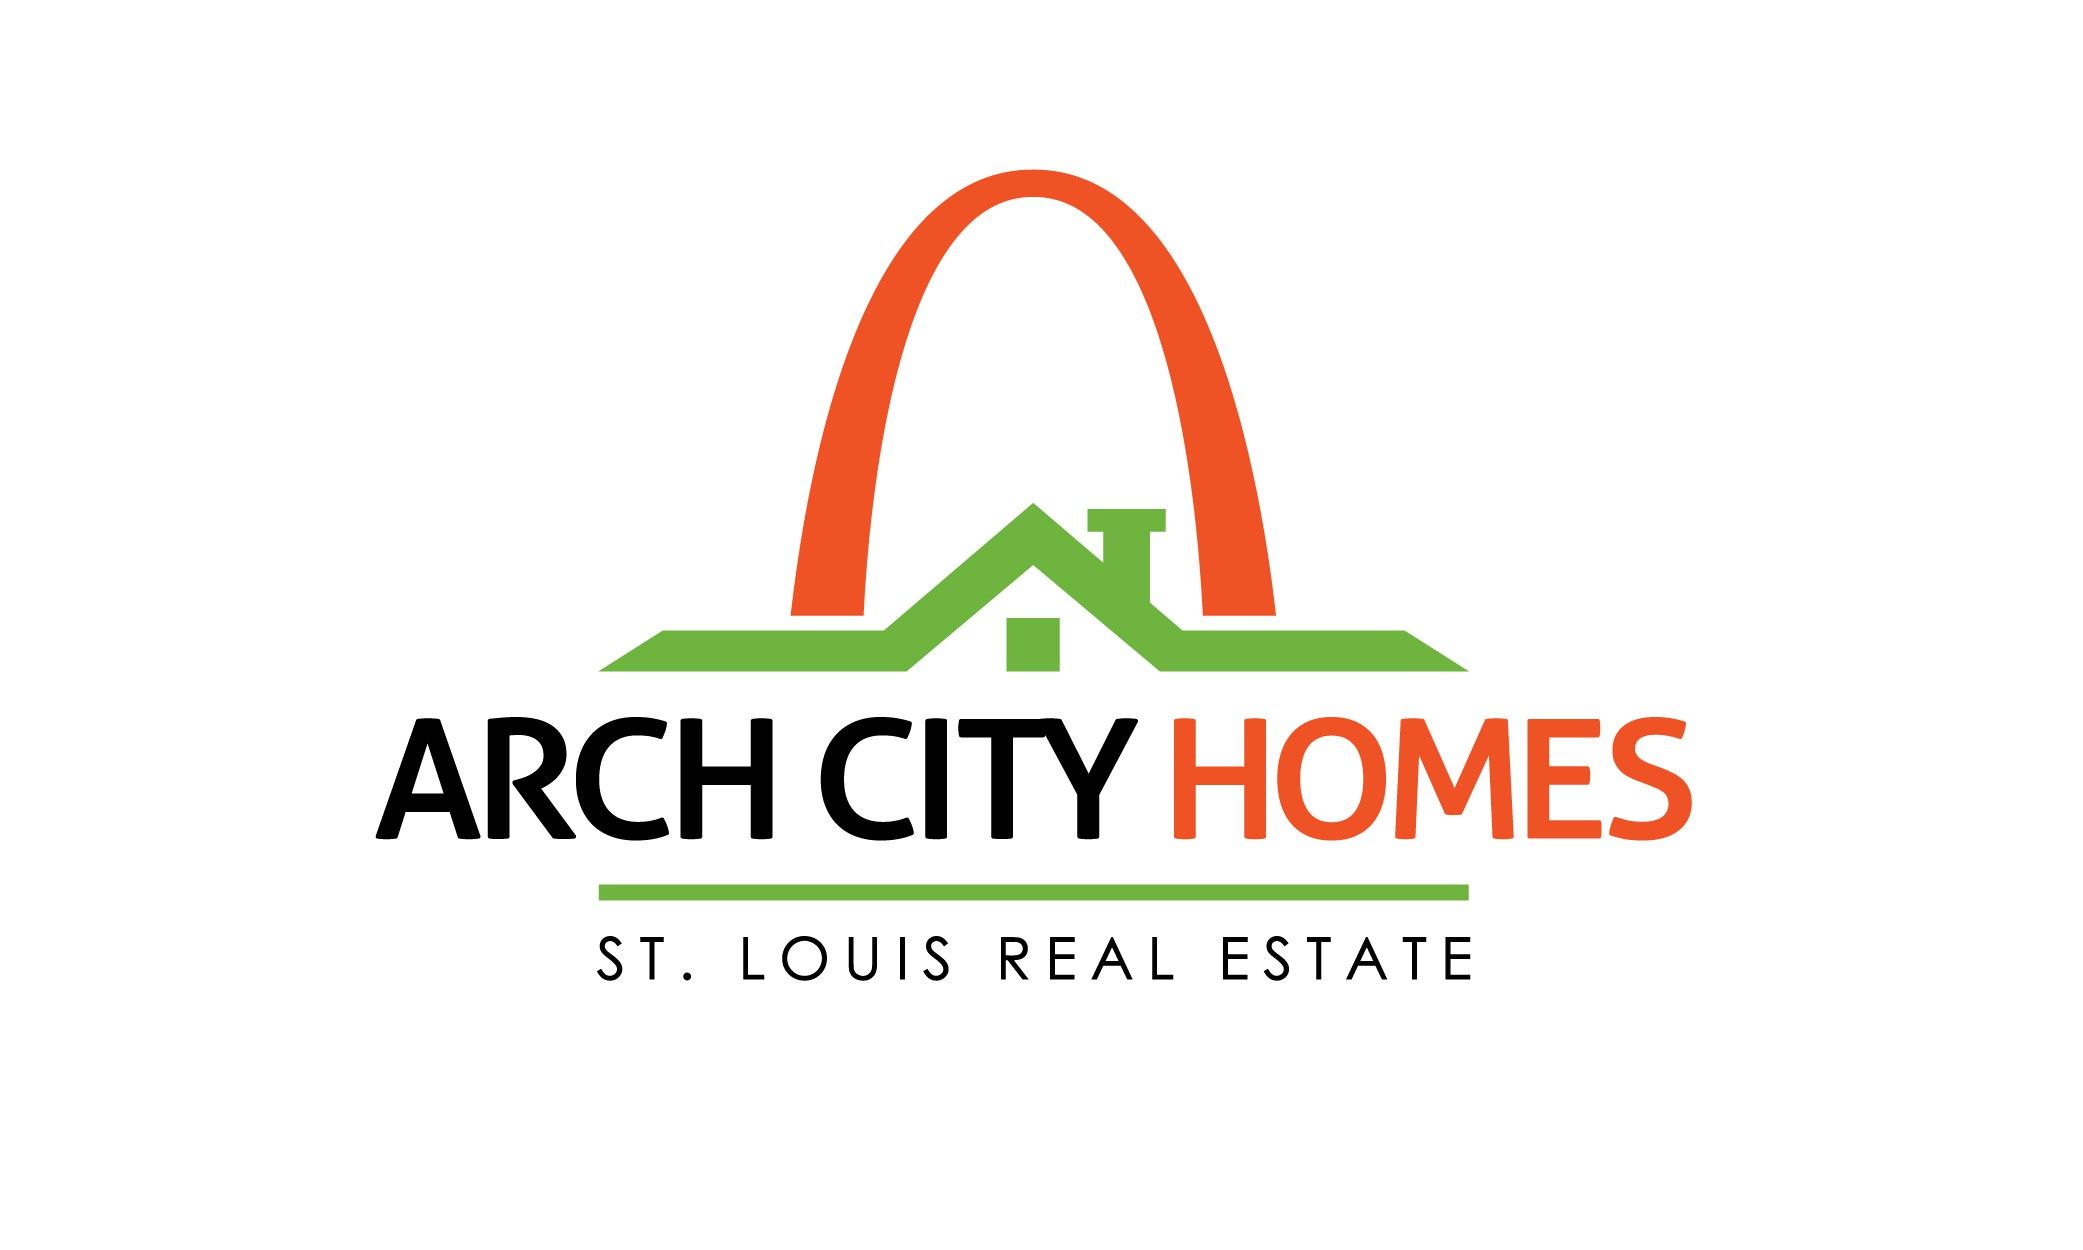 Modern logo design for real estate agent website Arch City Homes